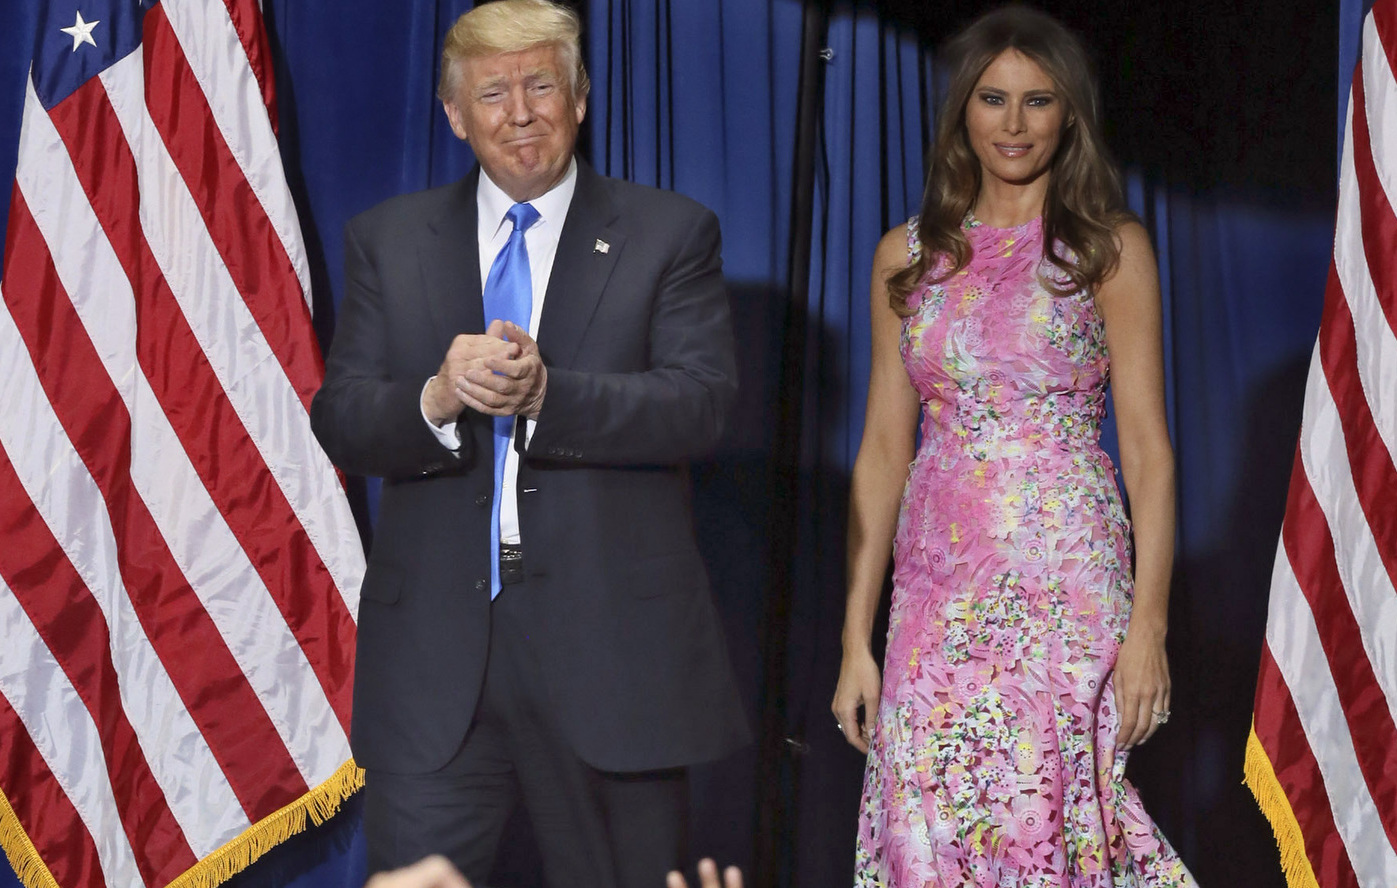 President Donald Trump and first lady Melania Trump arrive at a Make America Great Again rally at the Covelli Centre in Youngstown, Ohio, on Tuesday, July 25, 2017.